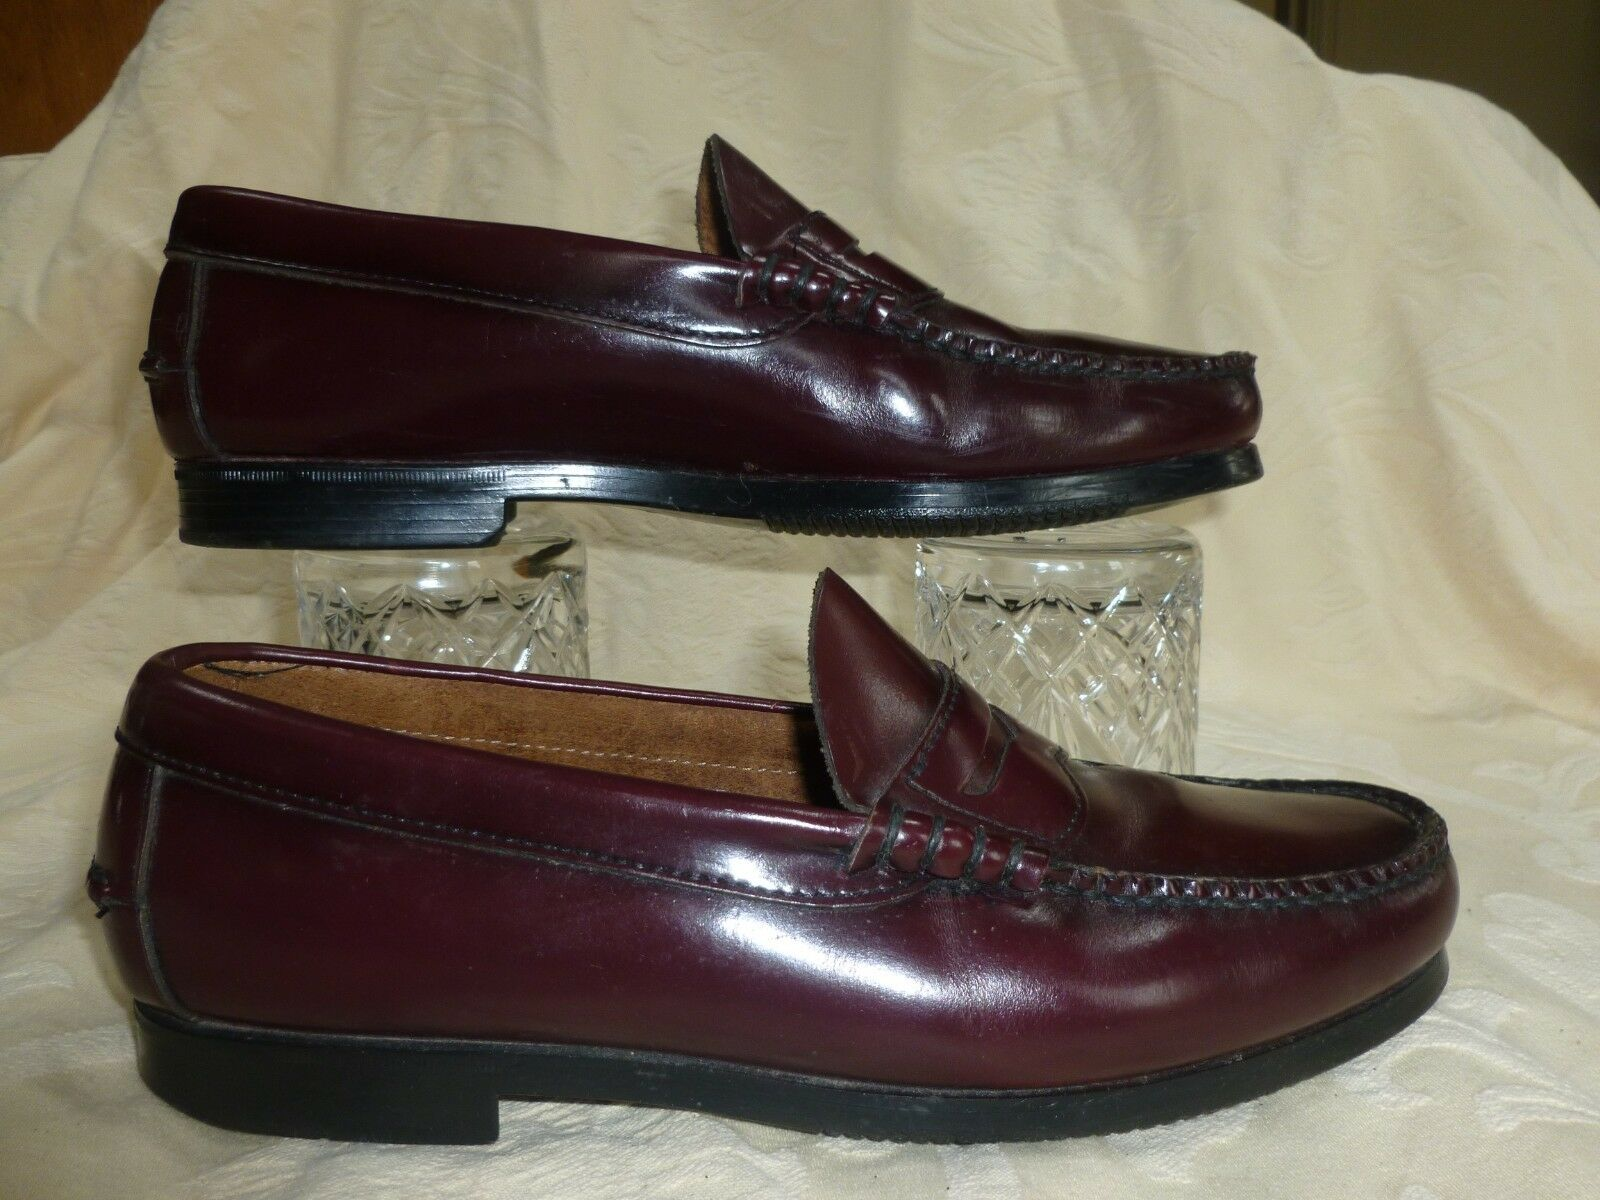 DEXTER BURGUNDY LEATHER LOAFER  SLIP ON   SIZE UK 7.5M   USA 8.5M MADE IN U S A